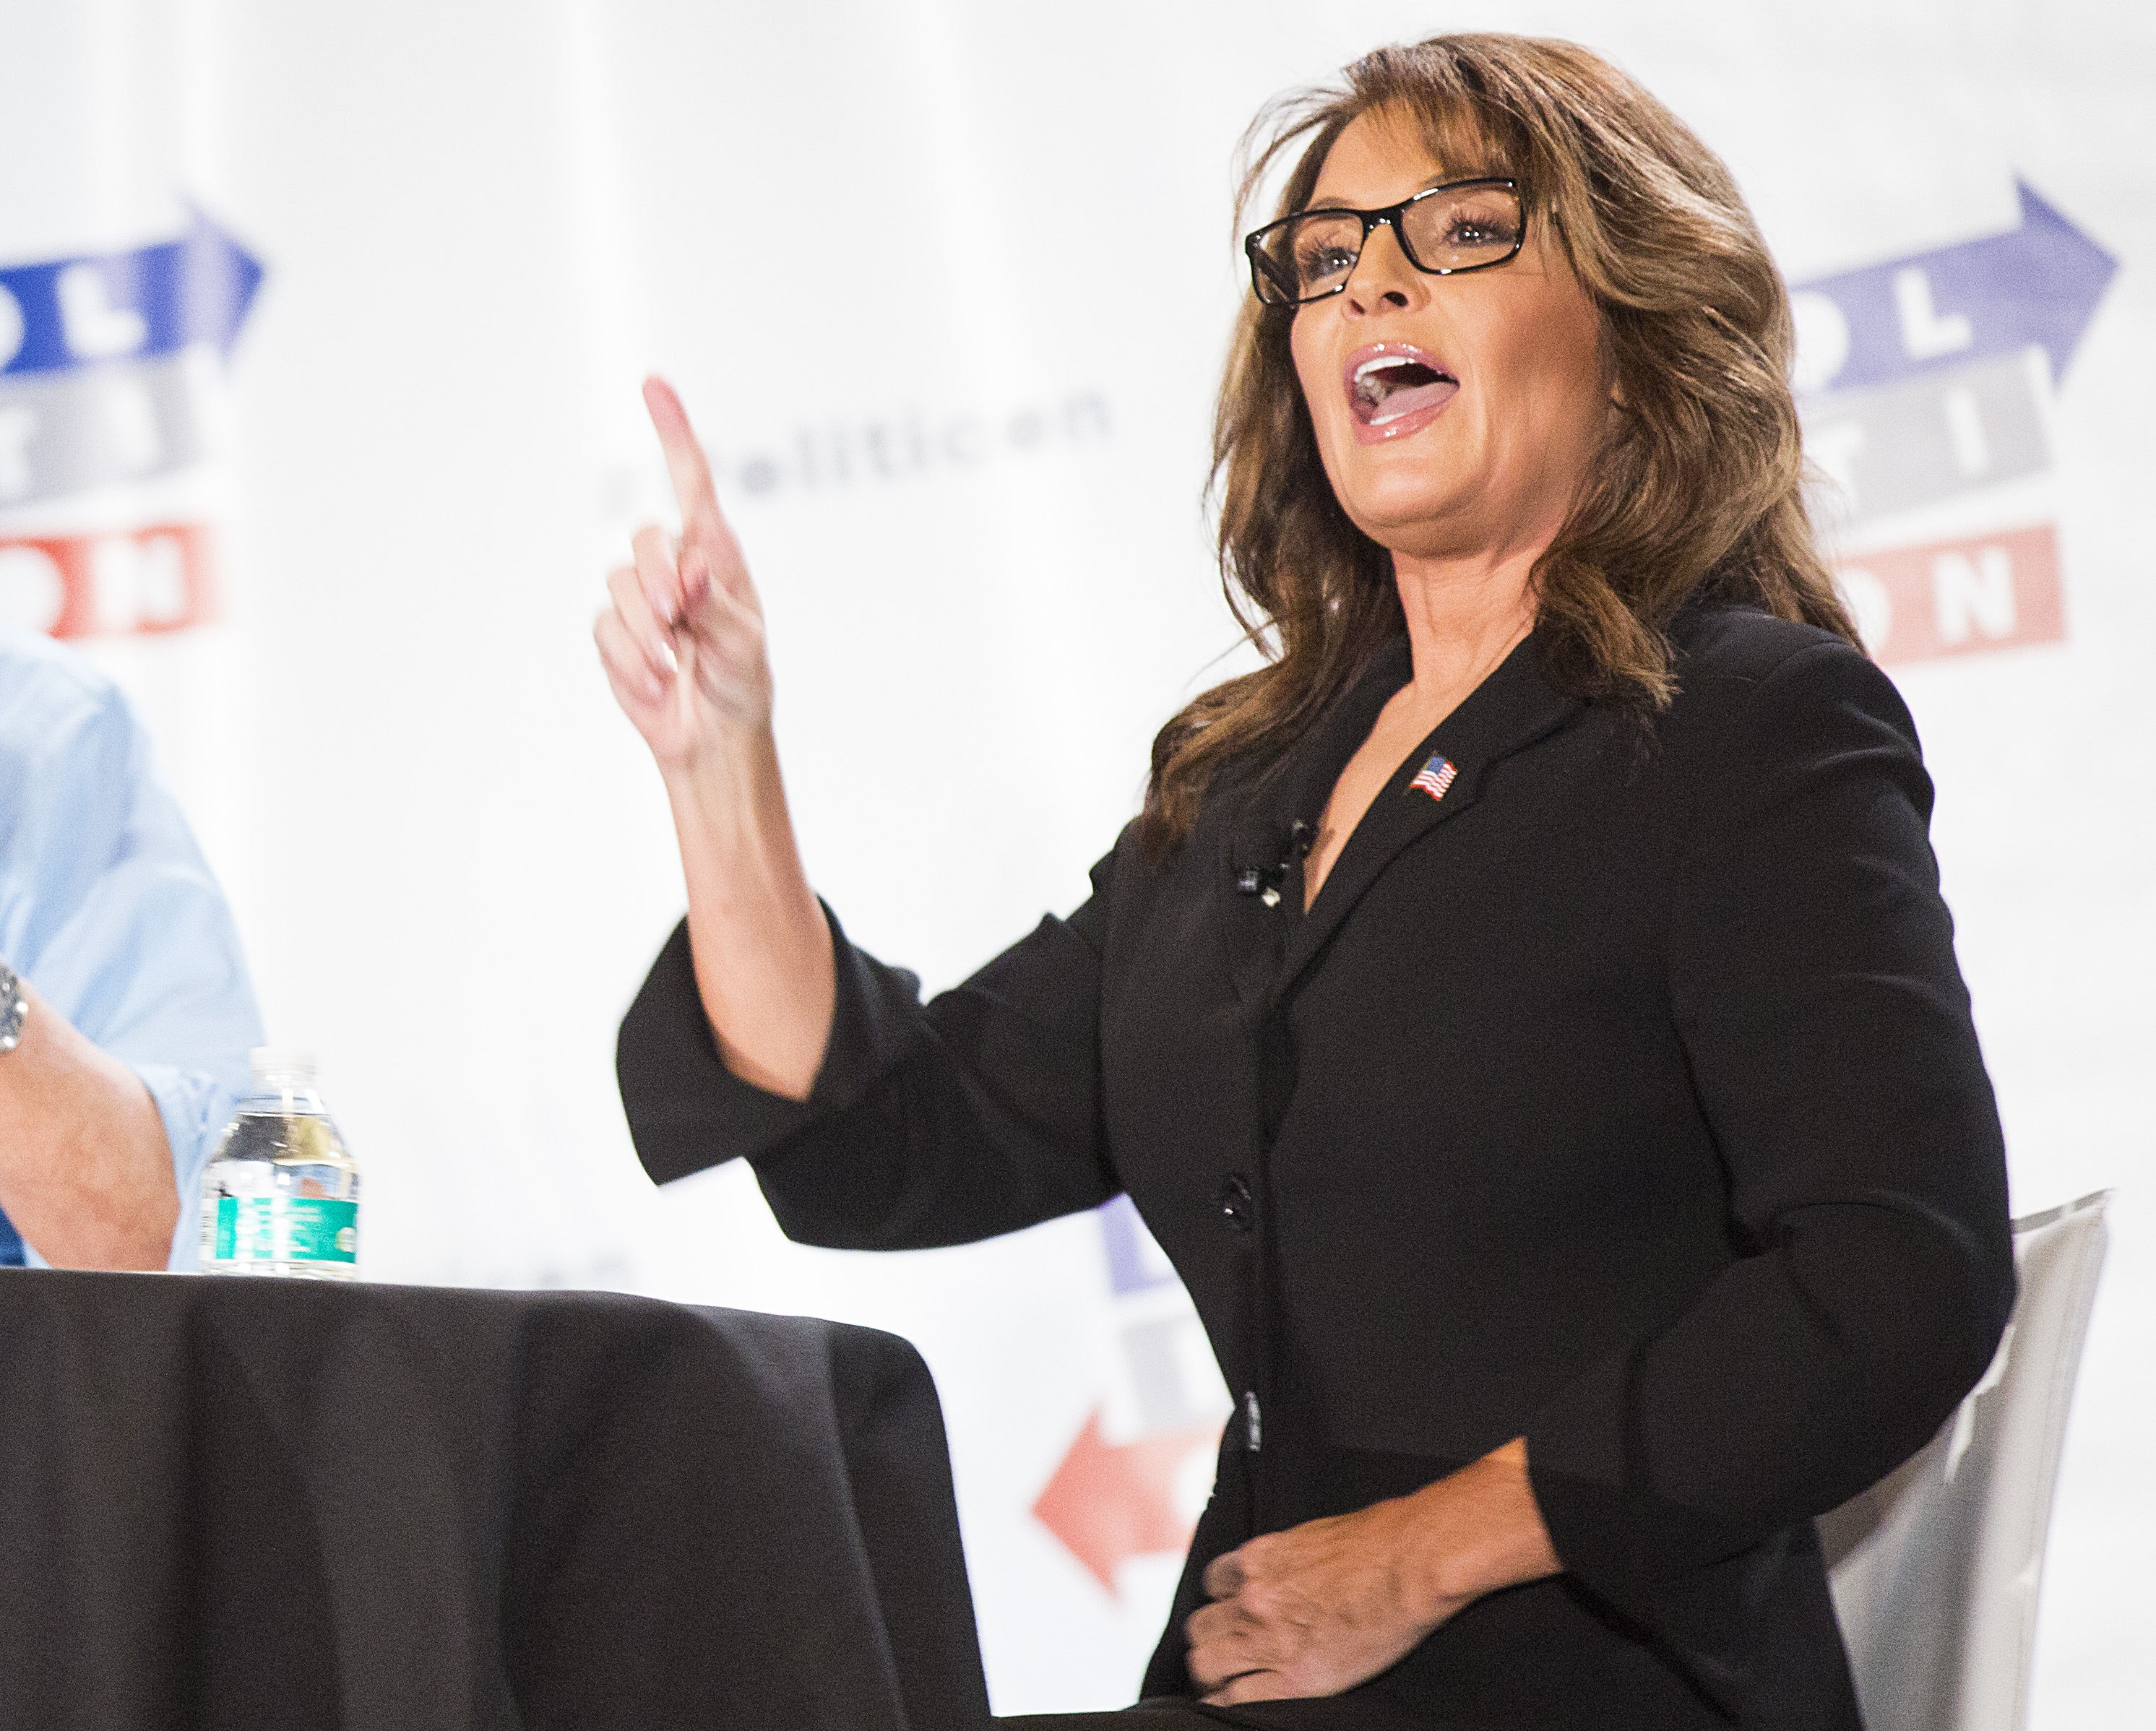 Sarah Palin seen at Politicon 2016 at The Pasadena Convention Center on Sunday, June 26, 2016, in Pasadena, CA. (Photo by Colin Young-Wolff/Invision/AP)